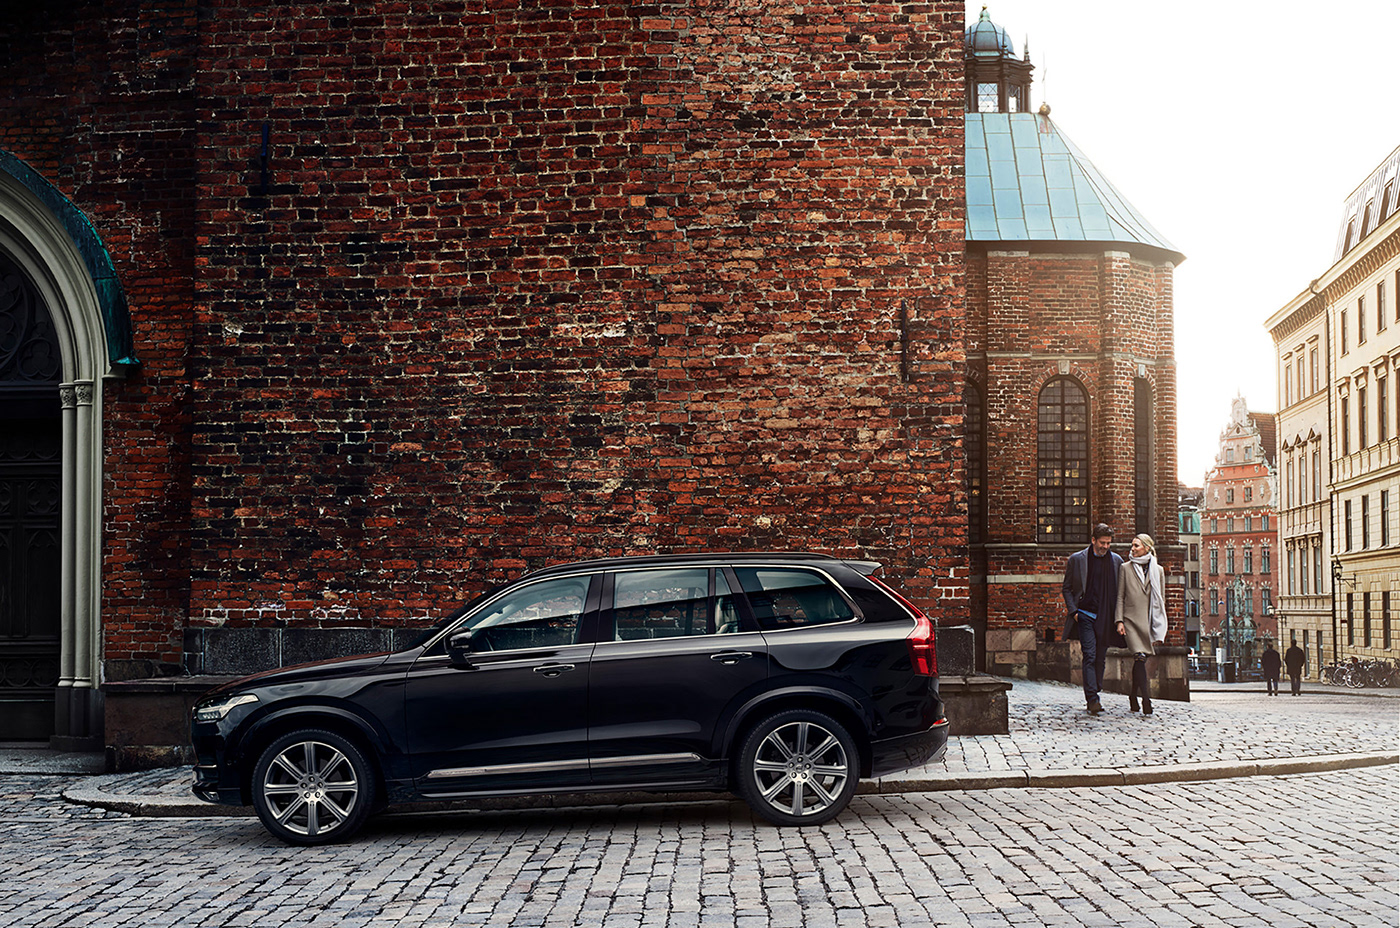 A black suv Volvo XC90 parking in front of a church with a couple walking by.